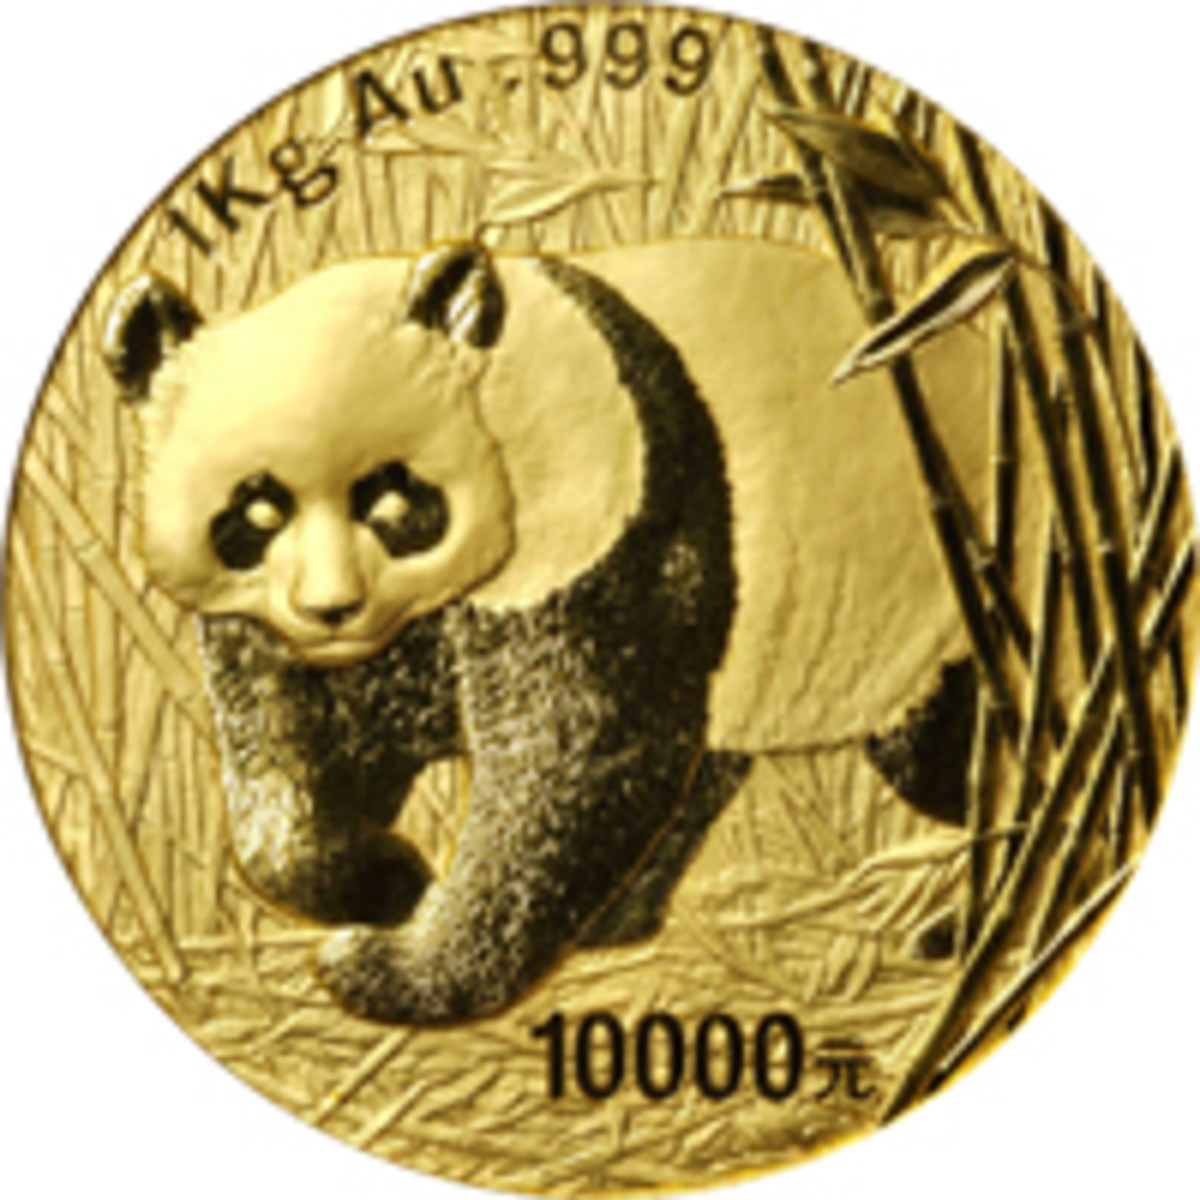 Top selling Panda: 10,000 yuan, 2002, KM-A1475, that realized $95,600. (Image courtesy Stack's-Bowers)